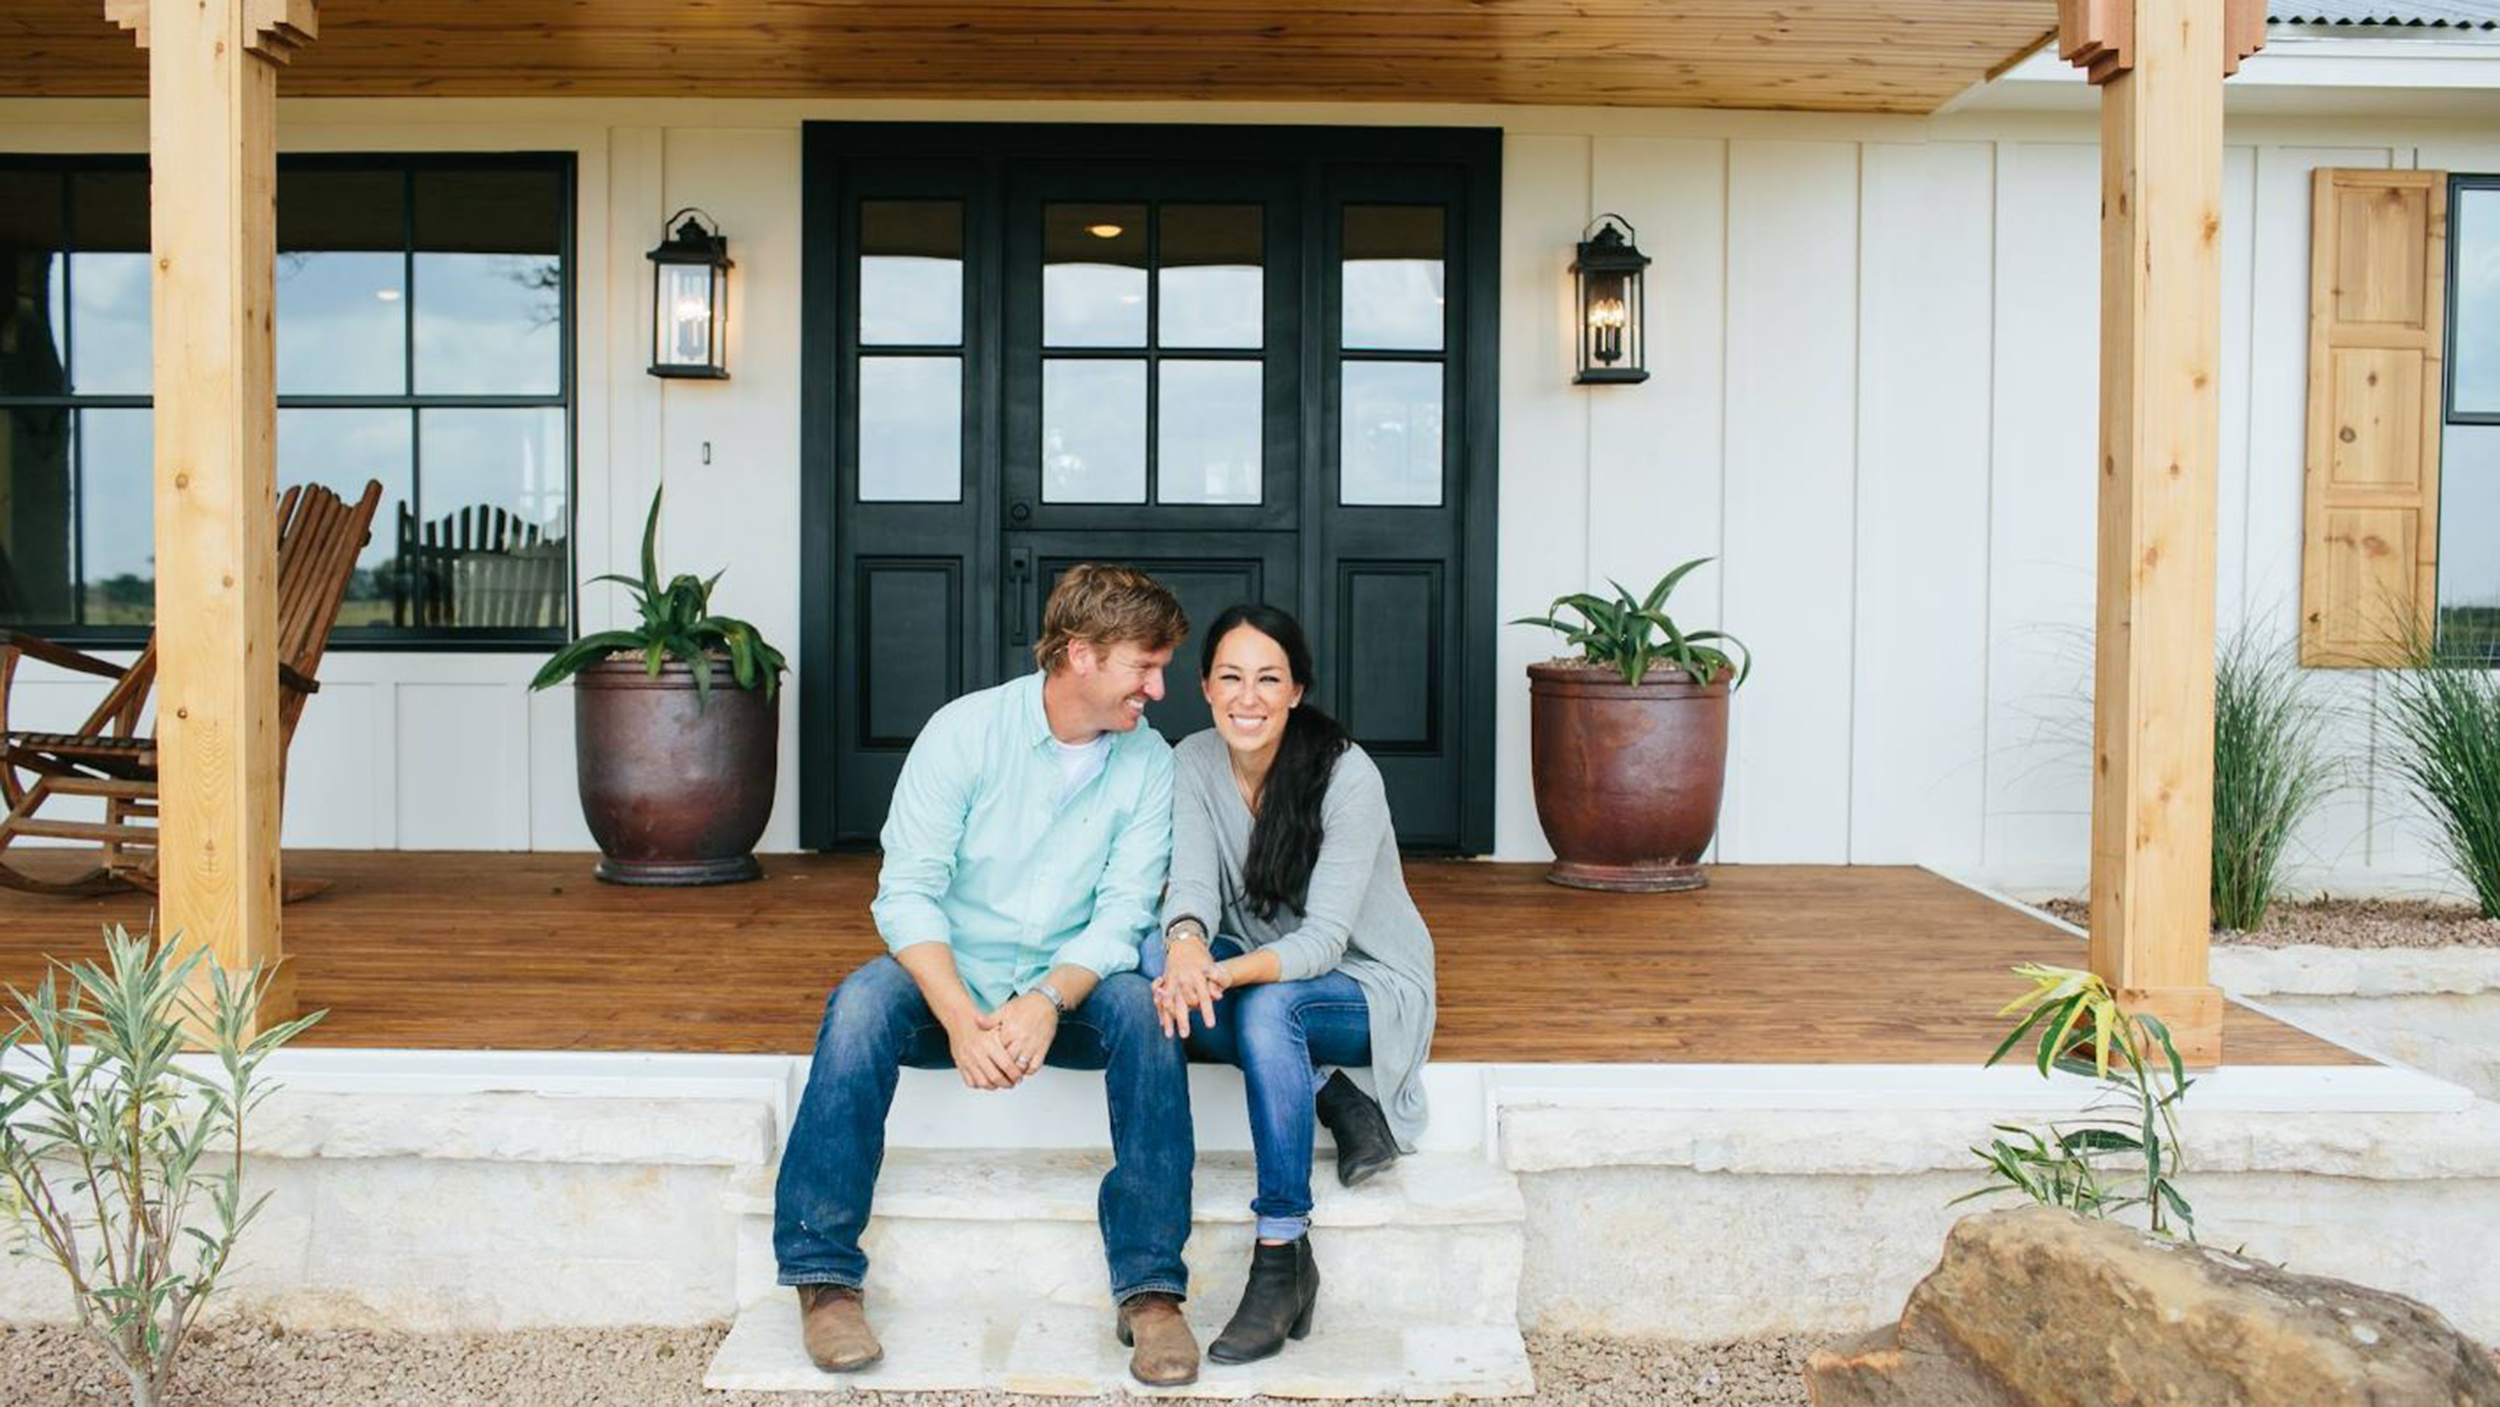 joanna gaines from 39 fixer upper 39 spills secrets about season 4. Black Bedroom Furniture Sets. Home Design Ideas